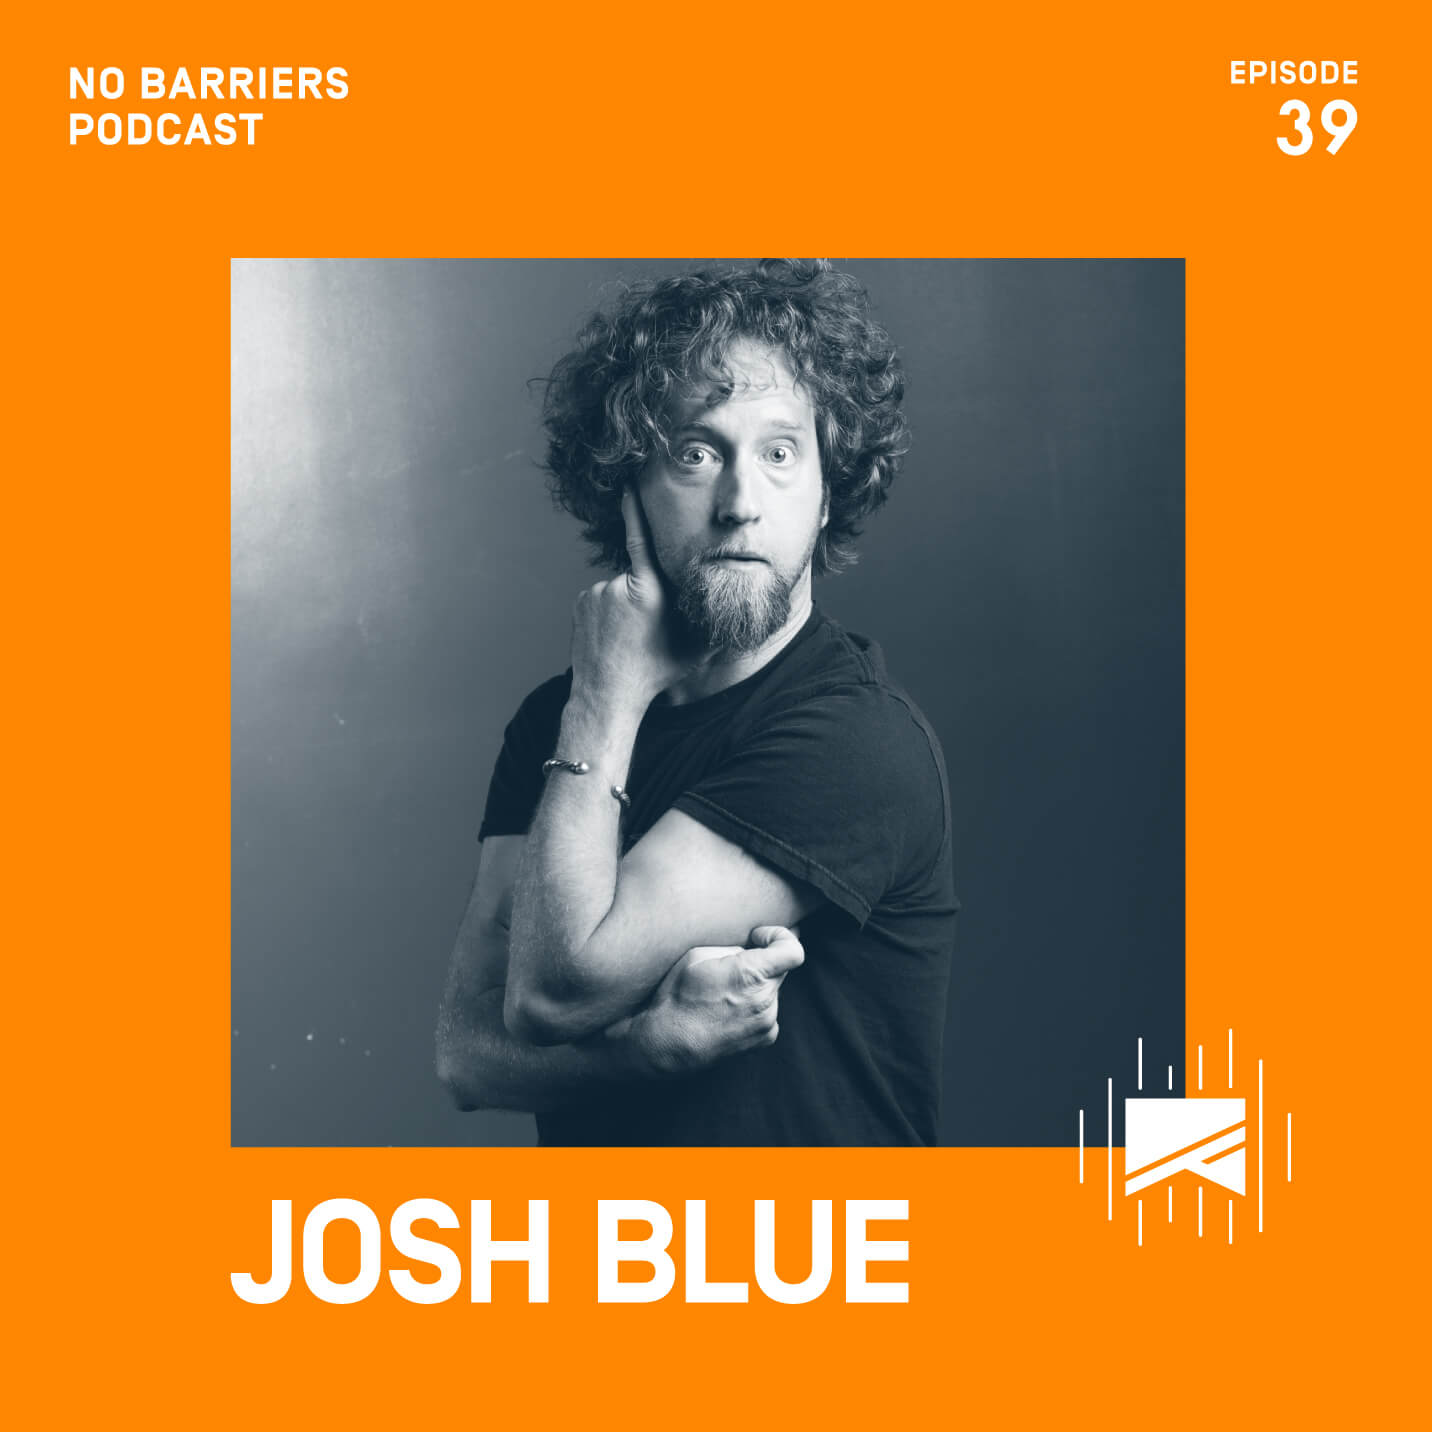 josh blue comedian interview